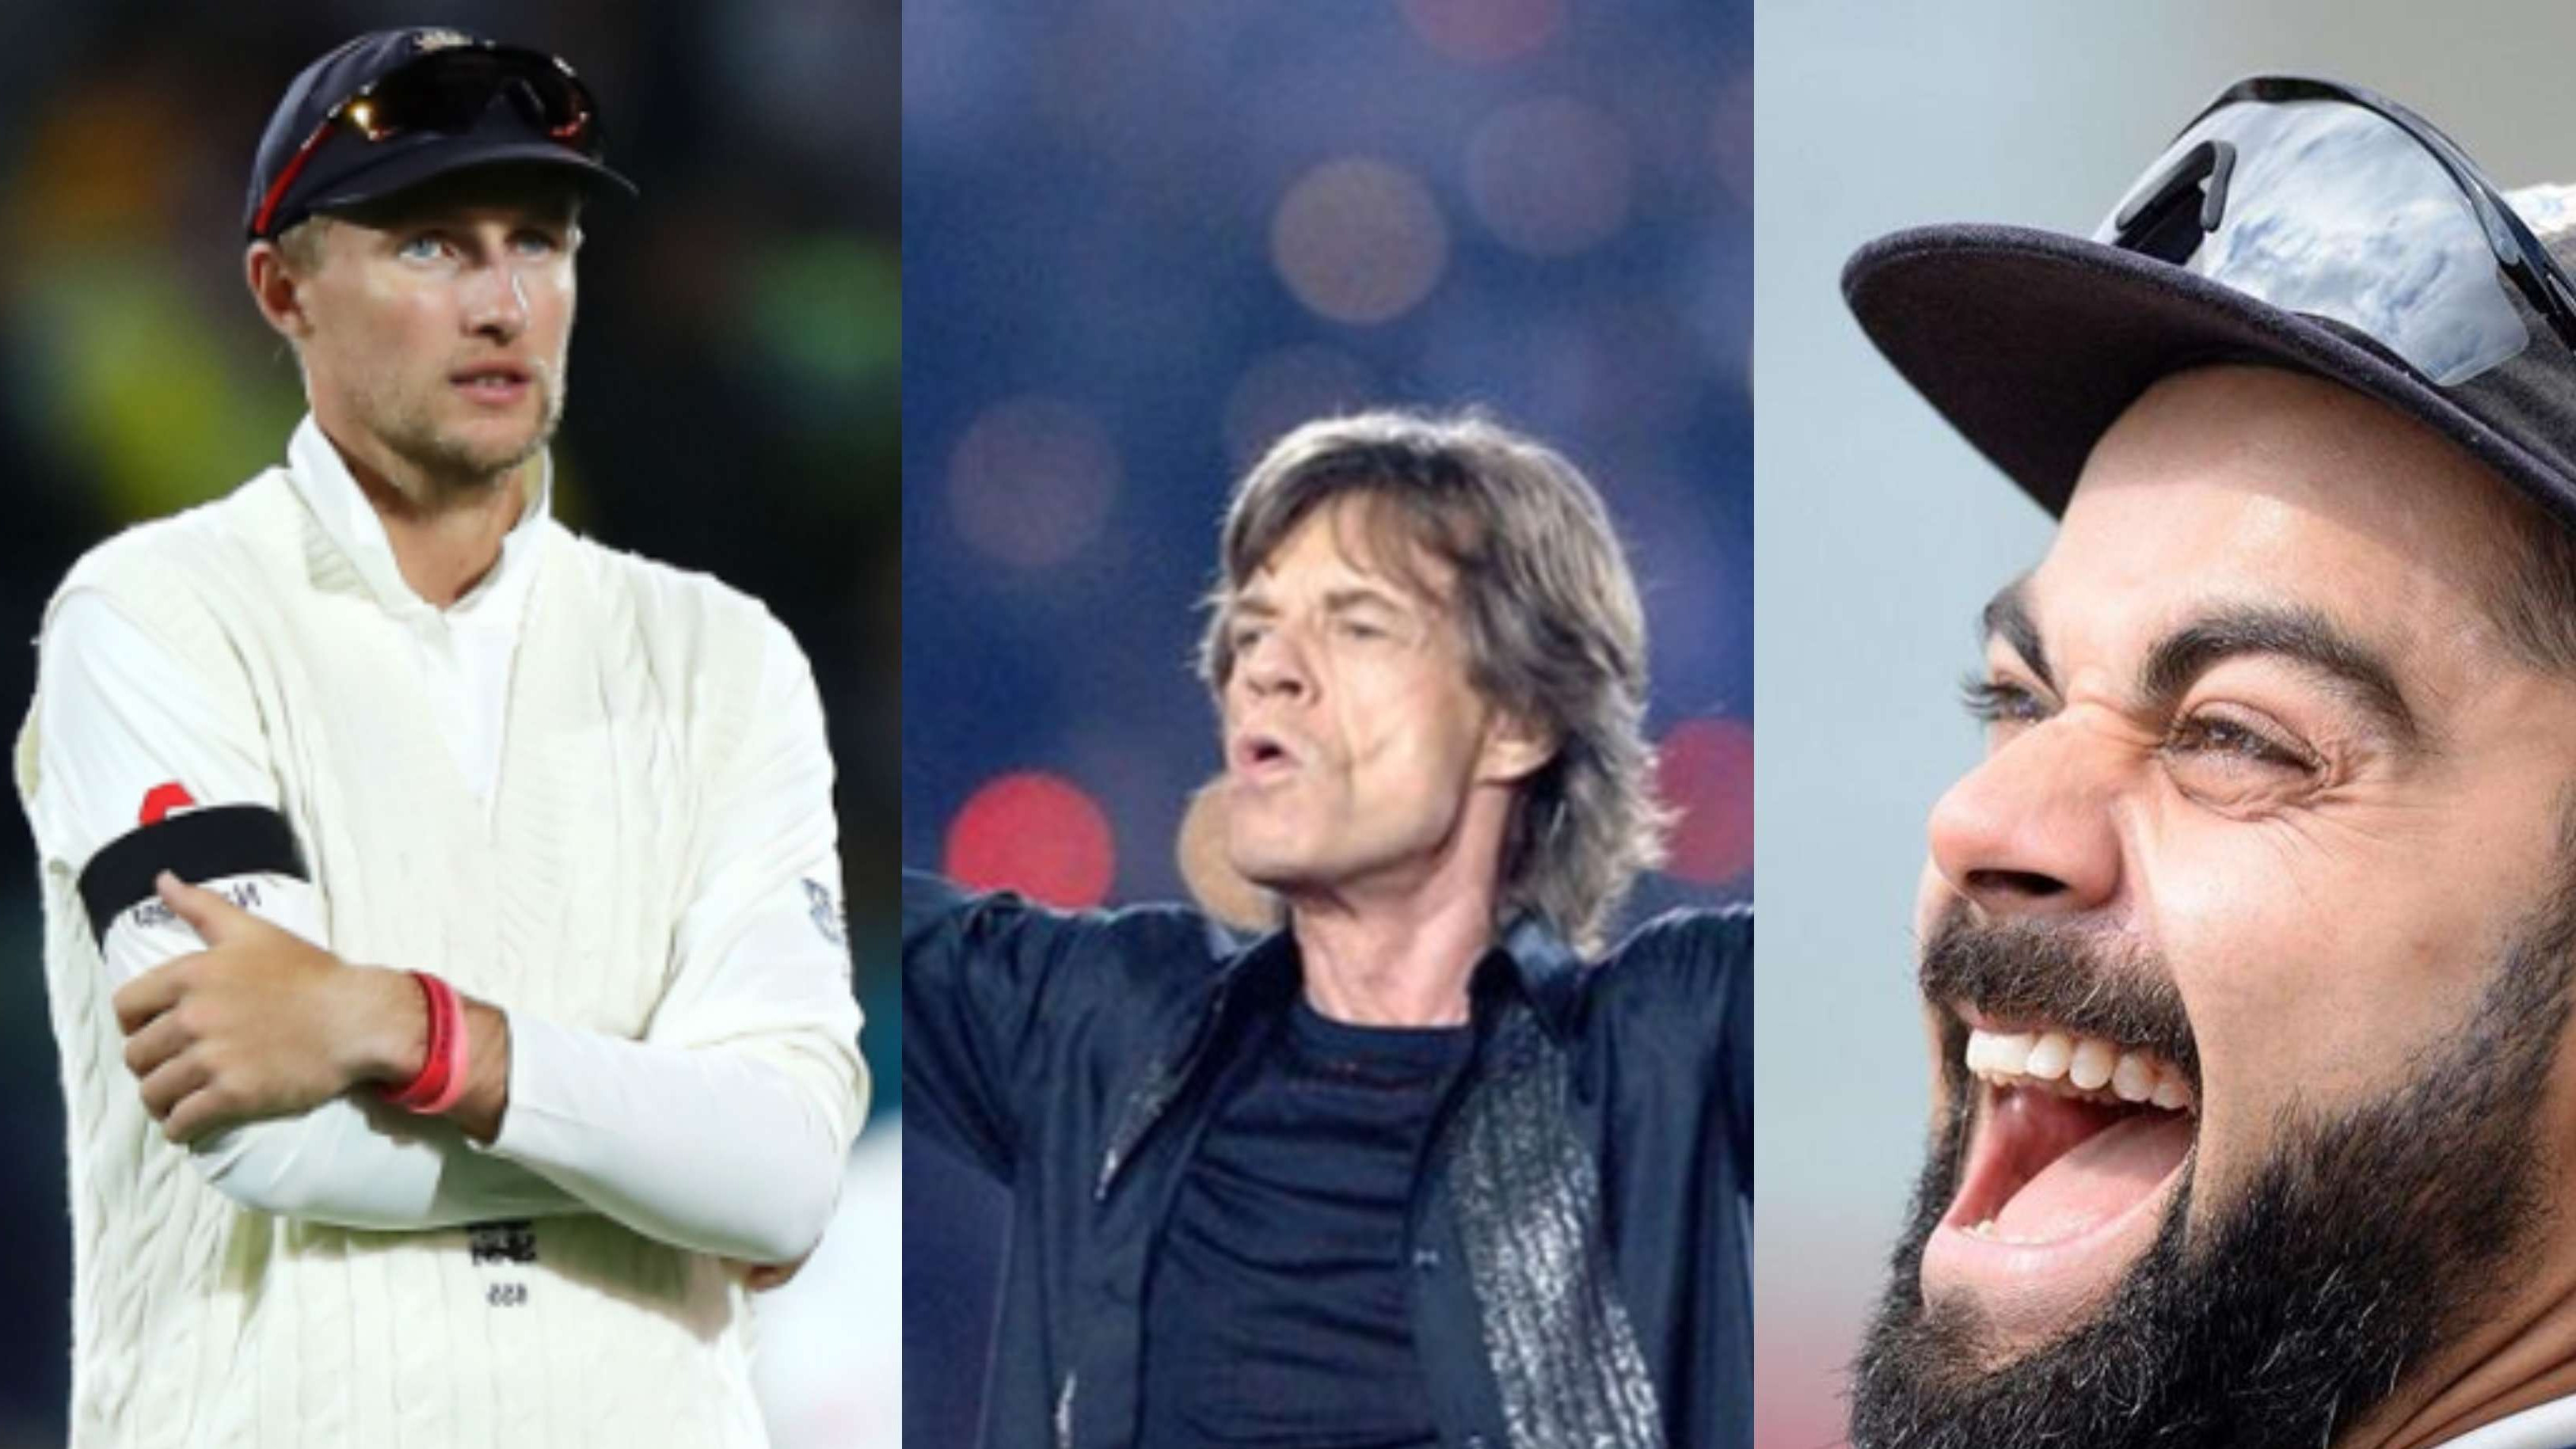 ENG vs IND 2018: Rolling Stones lead singer Mick Jagger to do charity donations for outstanding performances  at The Oval